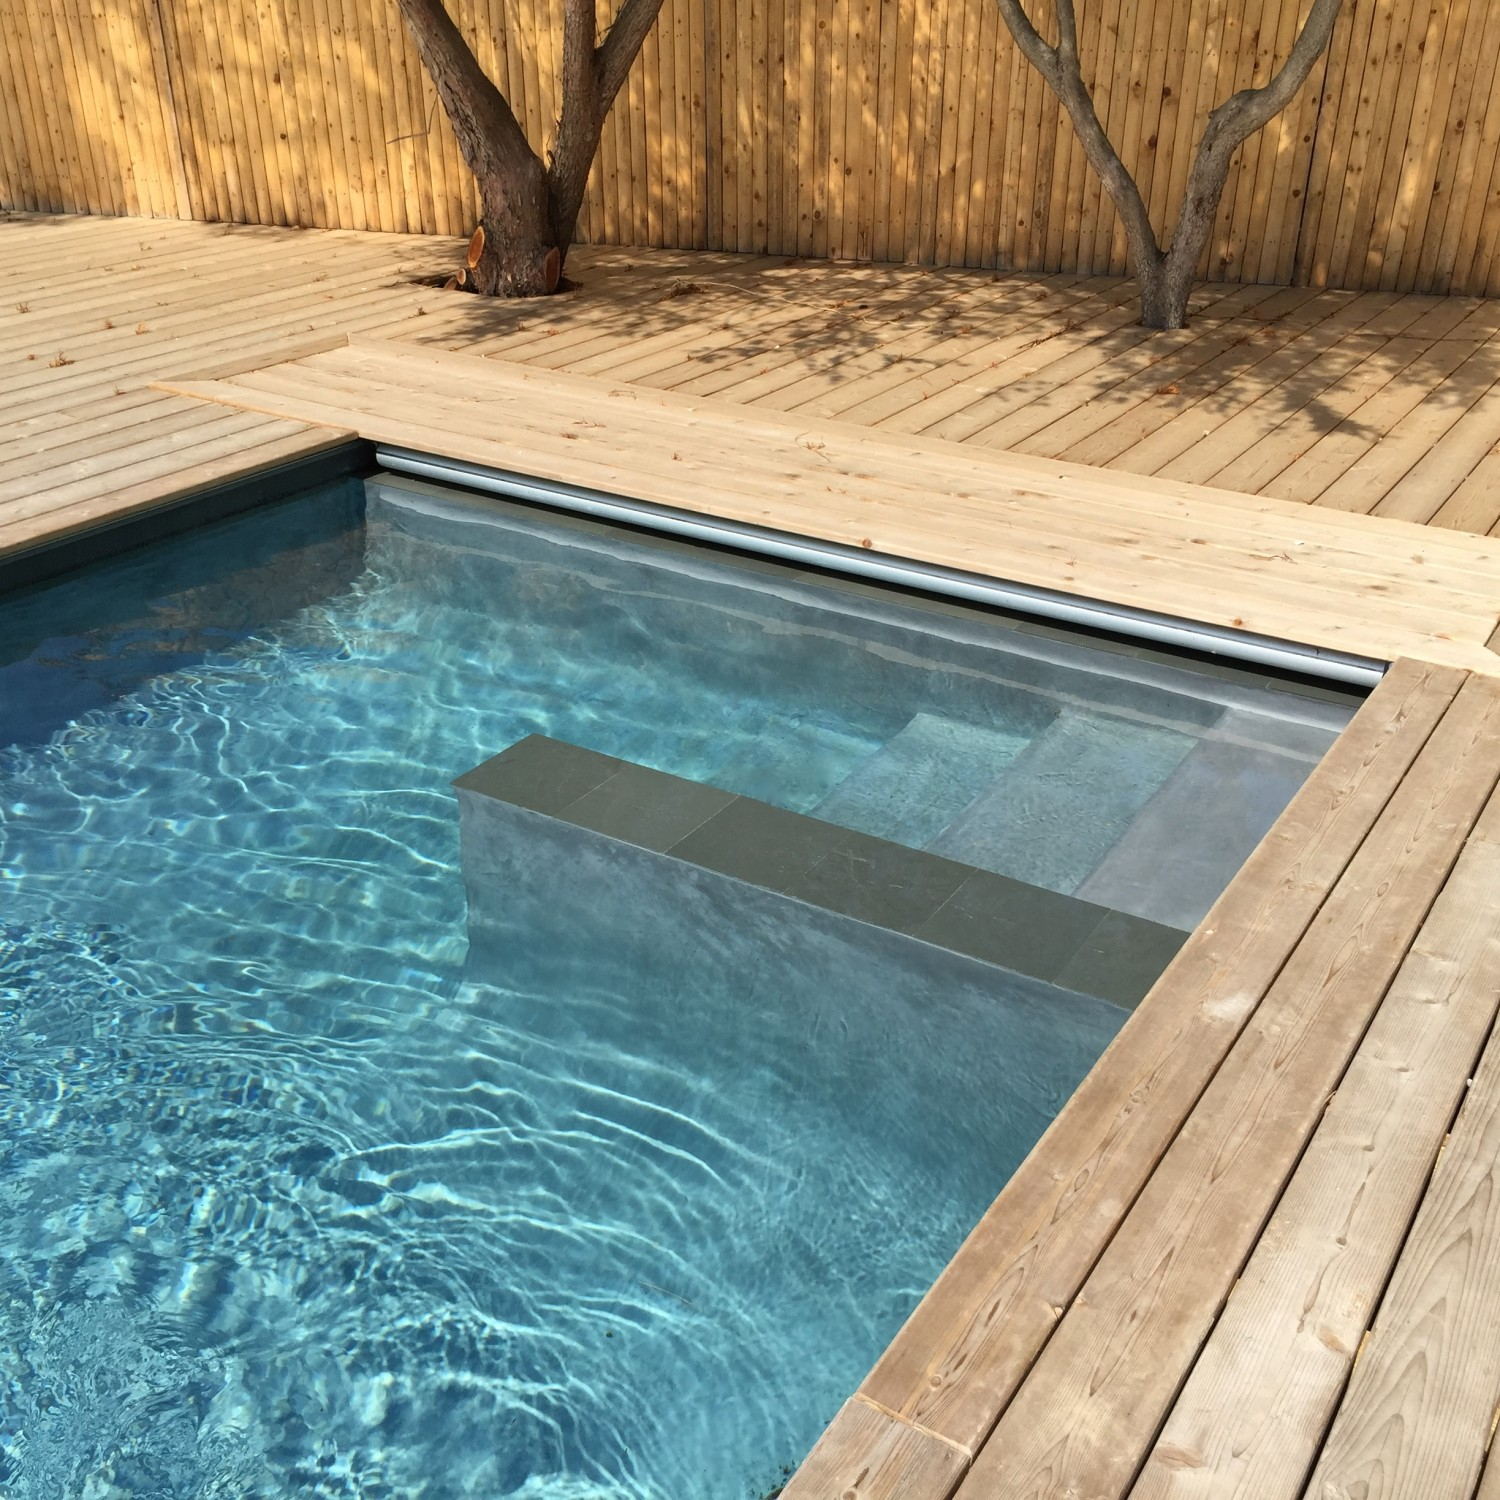 Sleek Custom Gunite Lap Pool In Montauk Patricks Pools